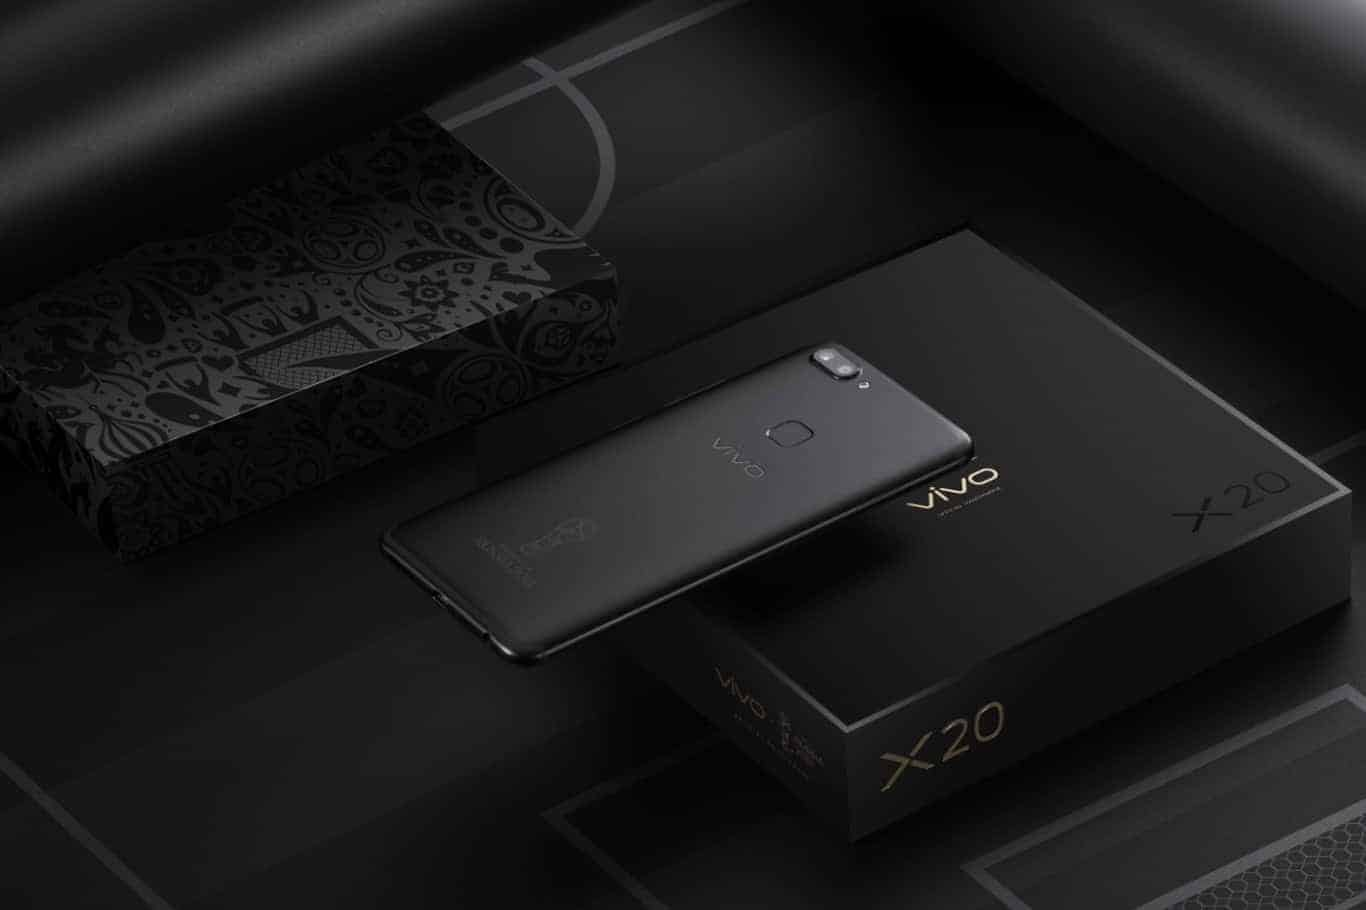 Special Edition Vivo X20 for FIFA World Cup 2018 12